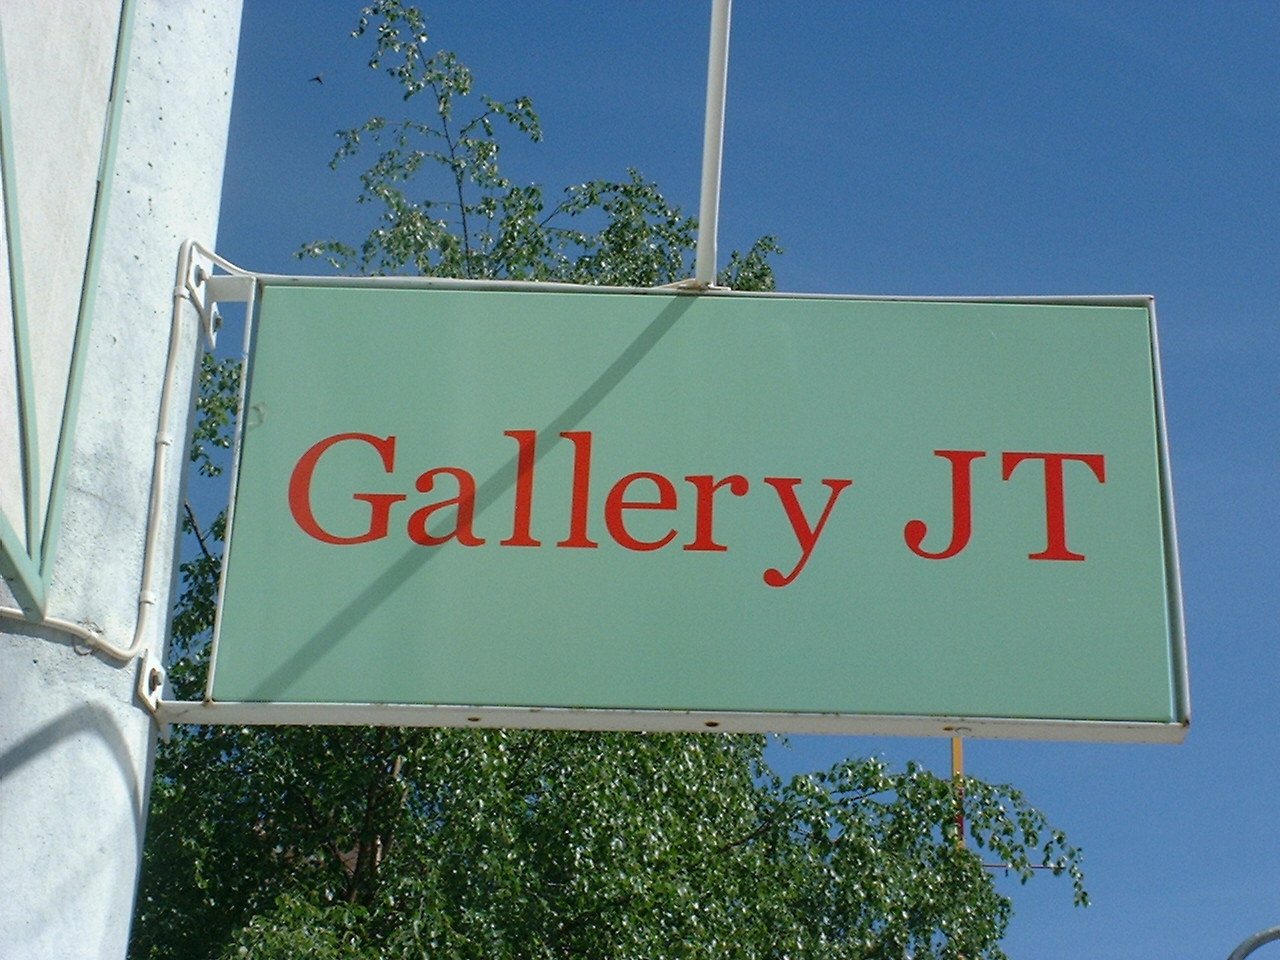 information about Gallery JT Ltd.